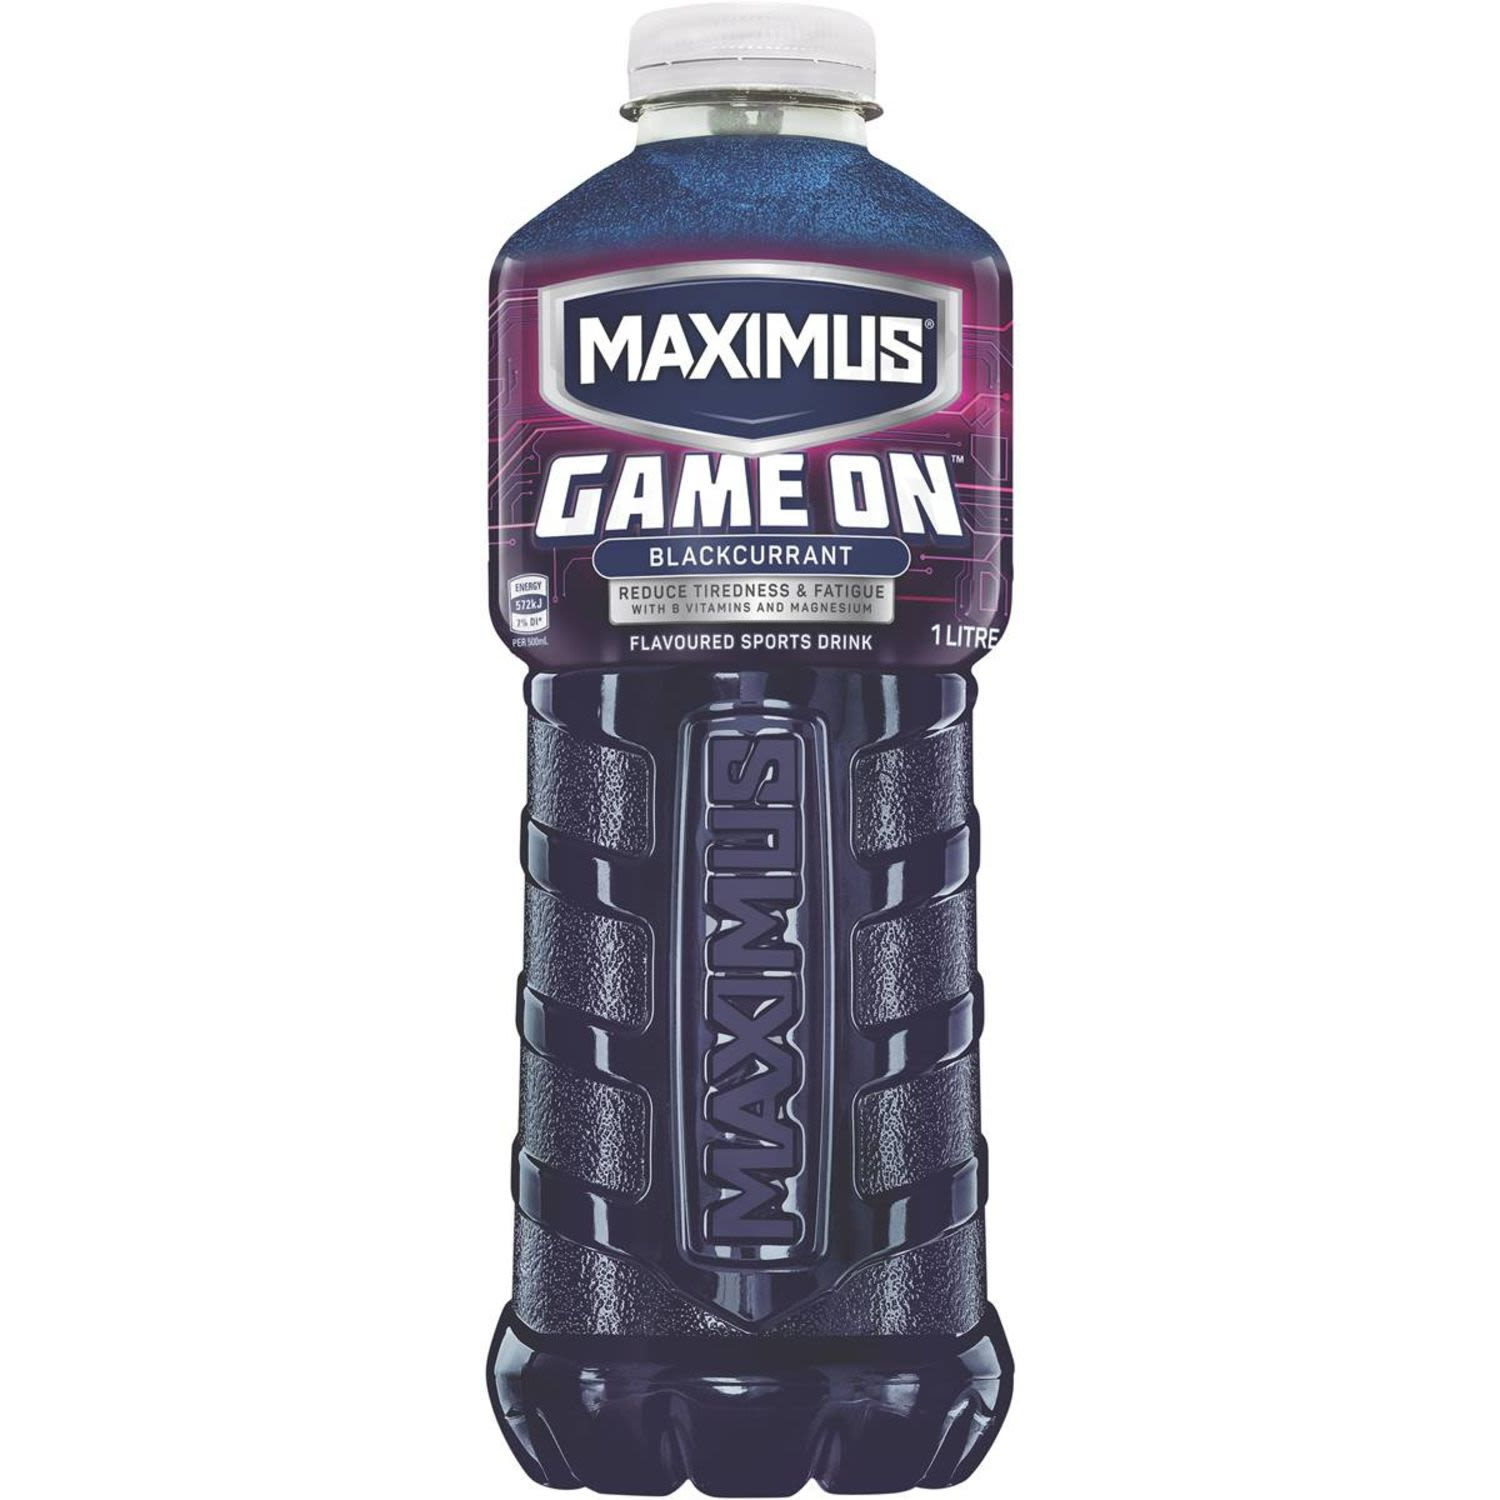 Maximus Game On Blackcurrant, 1 Litre